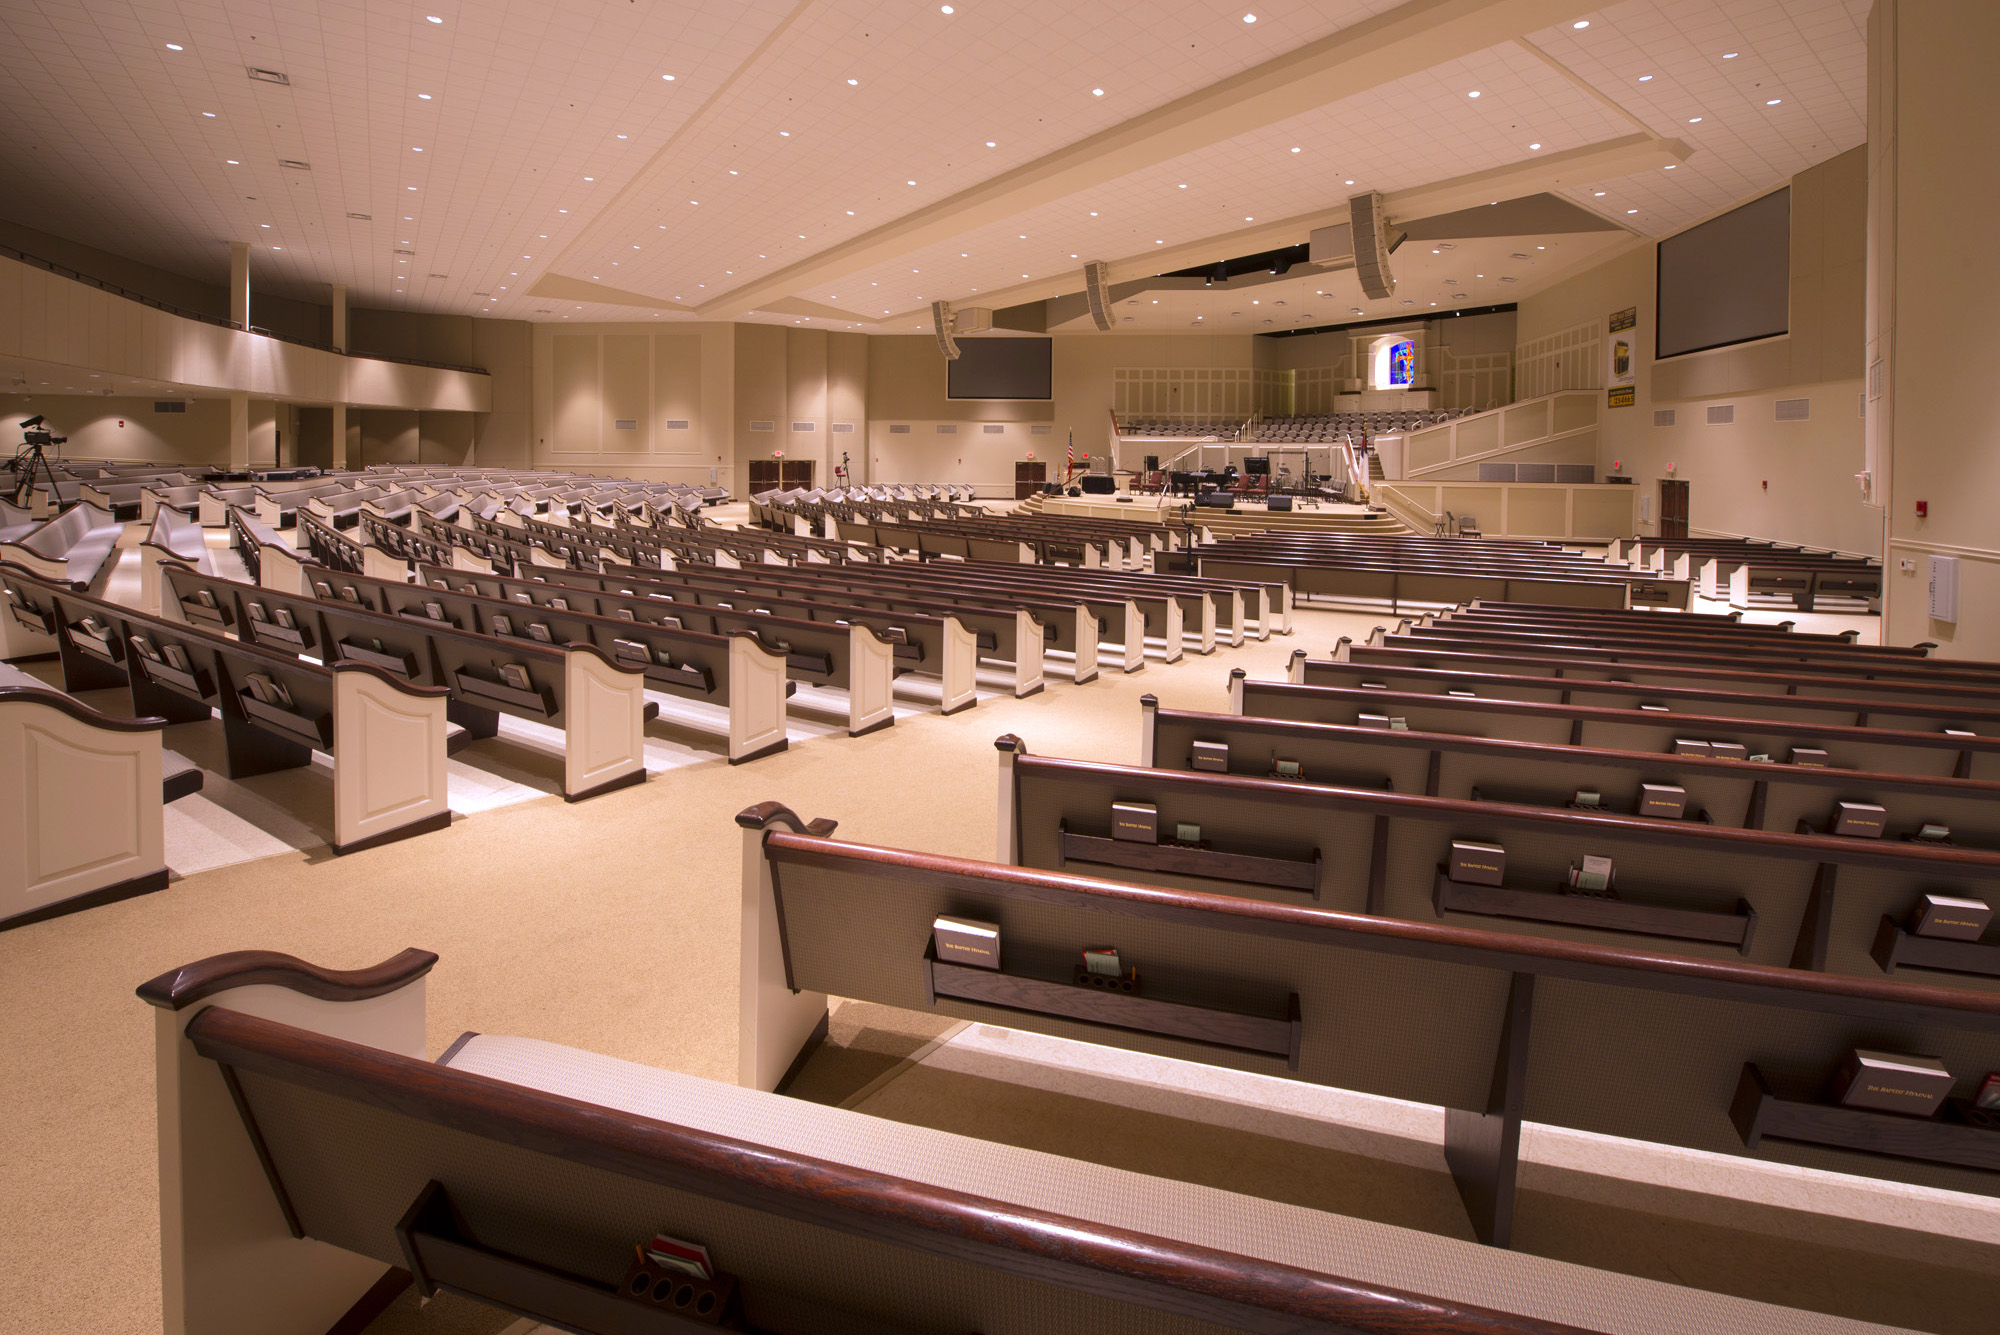 Summer Grove Baptist Church Interior Design